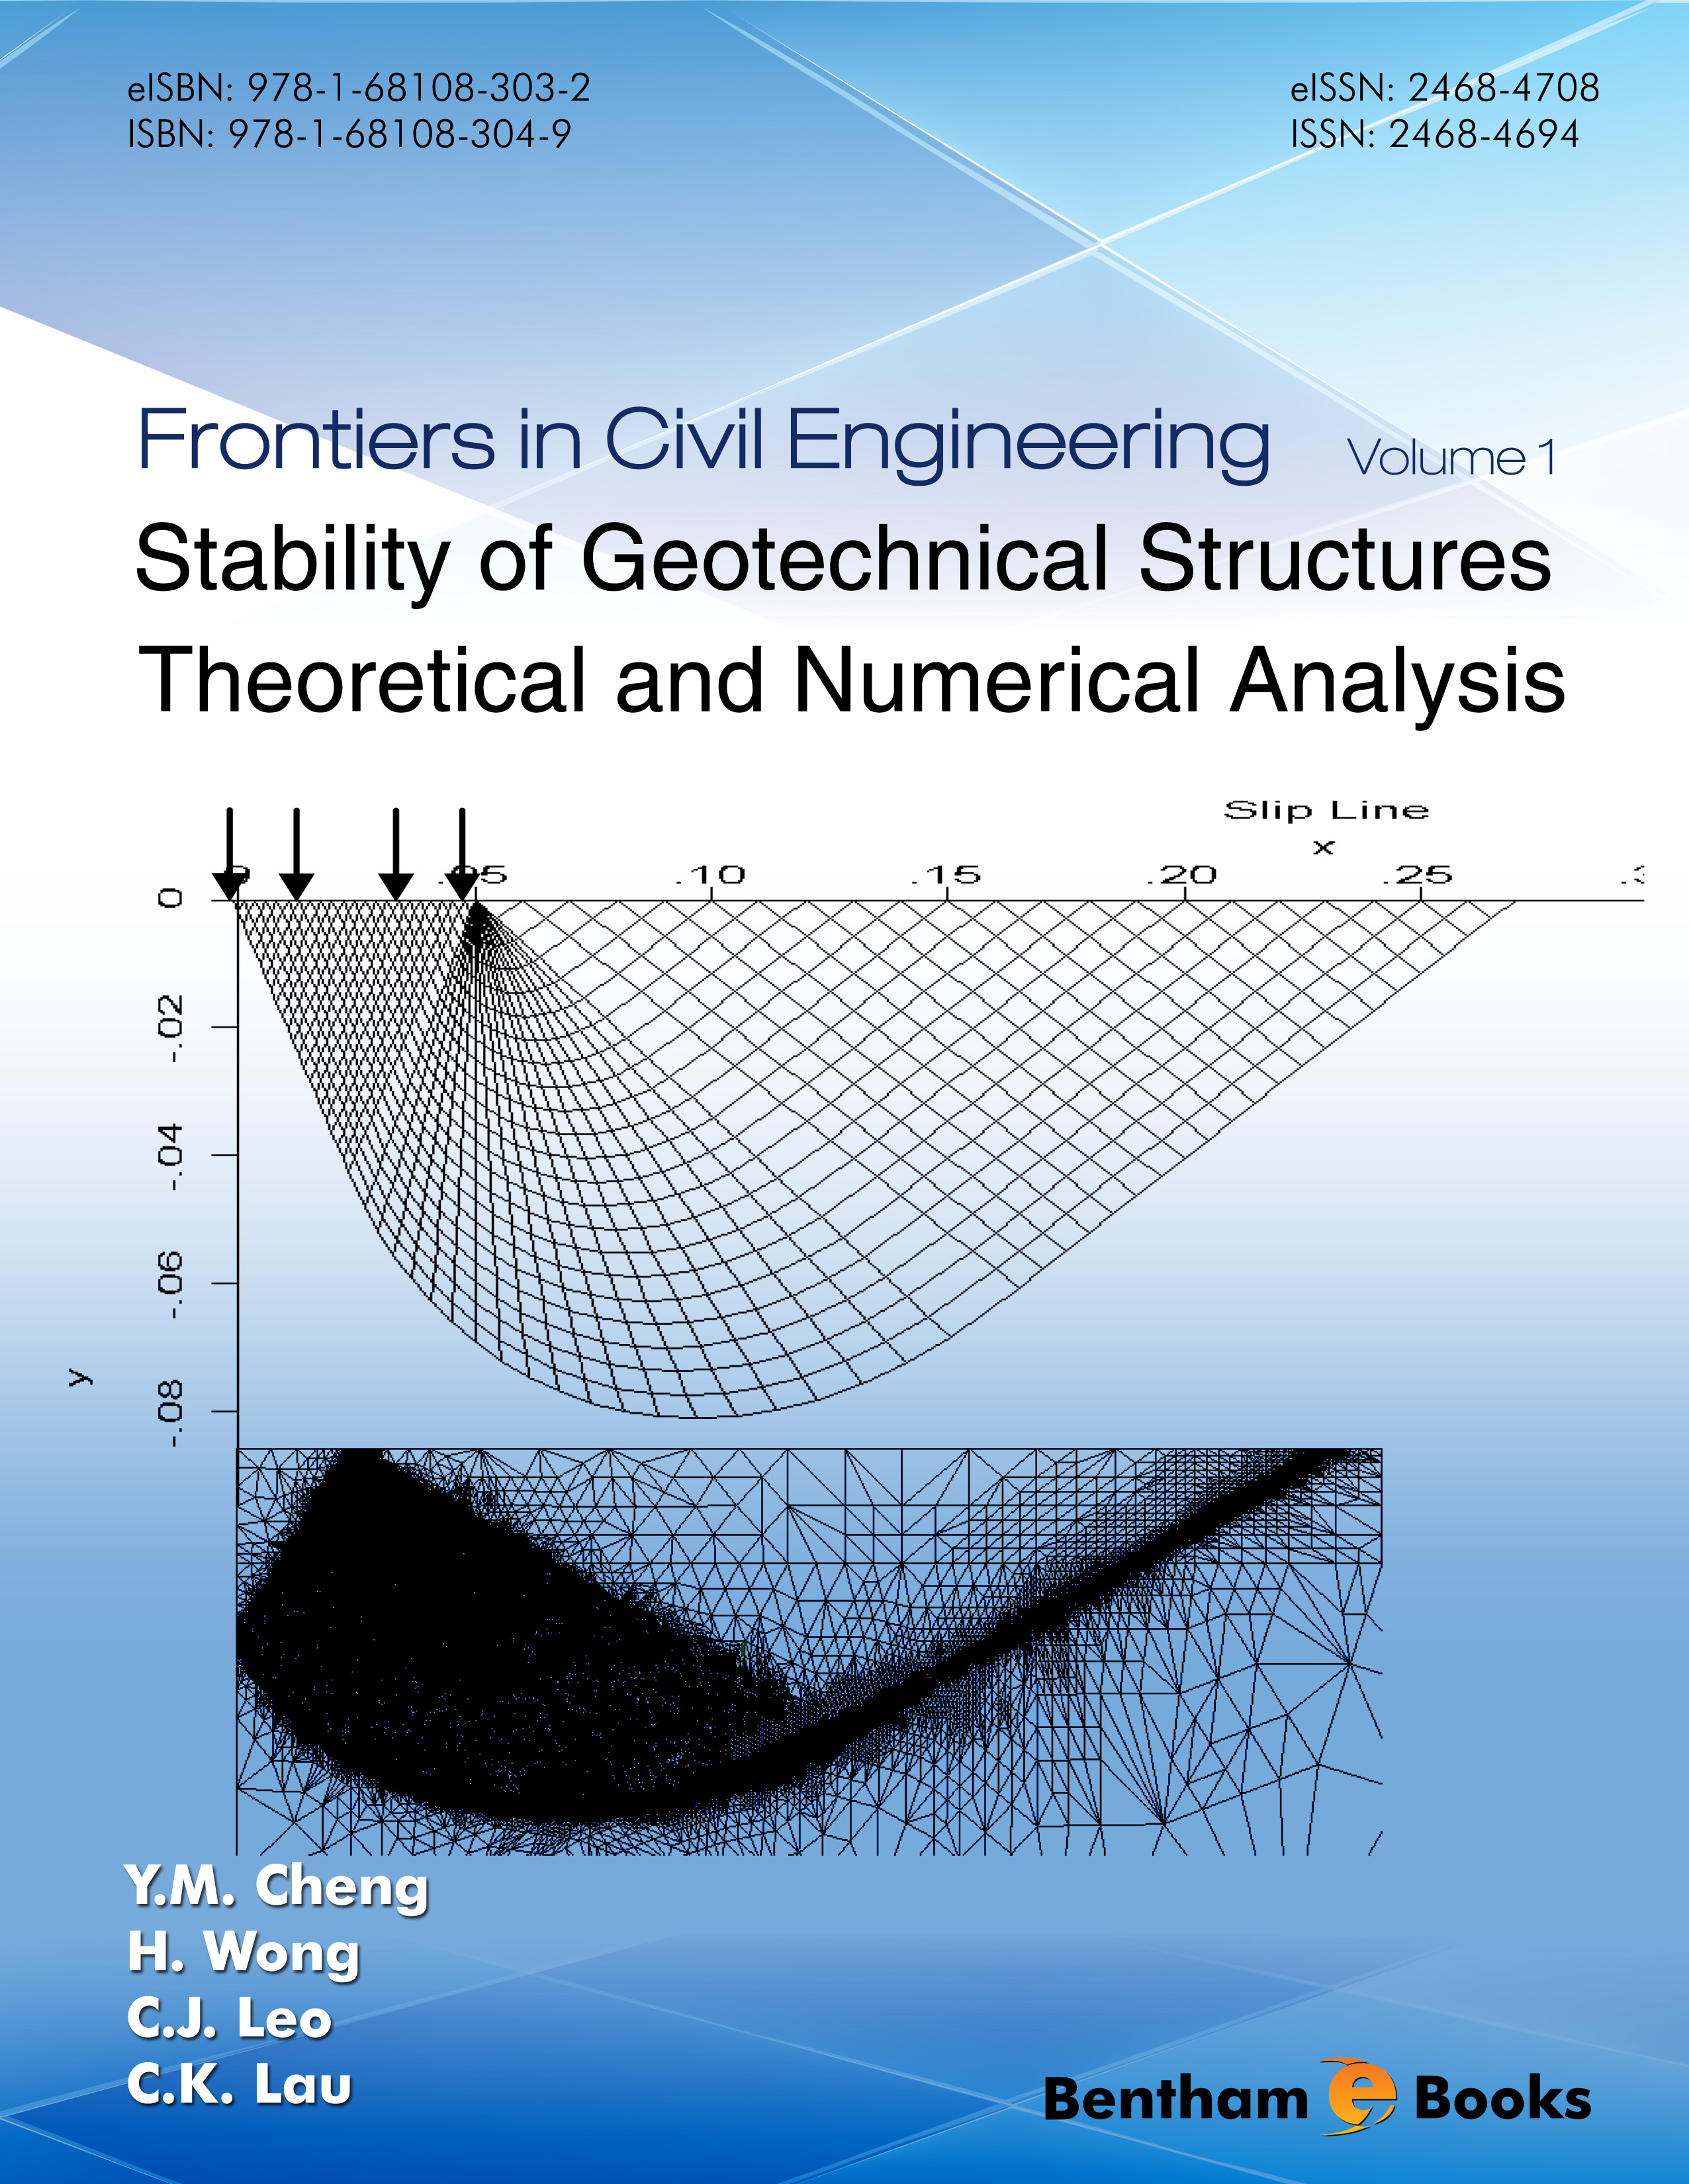 Stability of Geotechnical Structures: Theoretical and Numerical Analysis